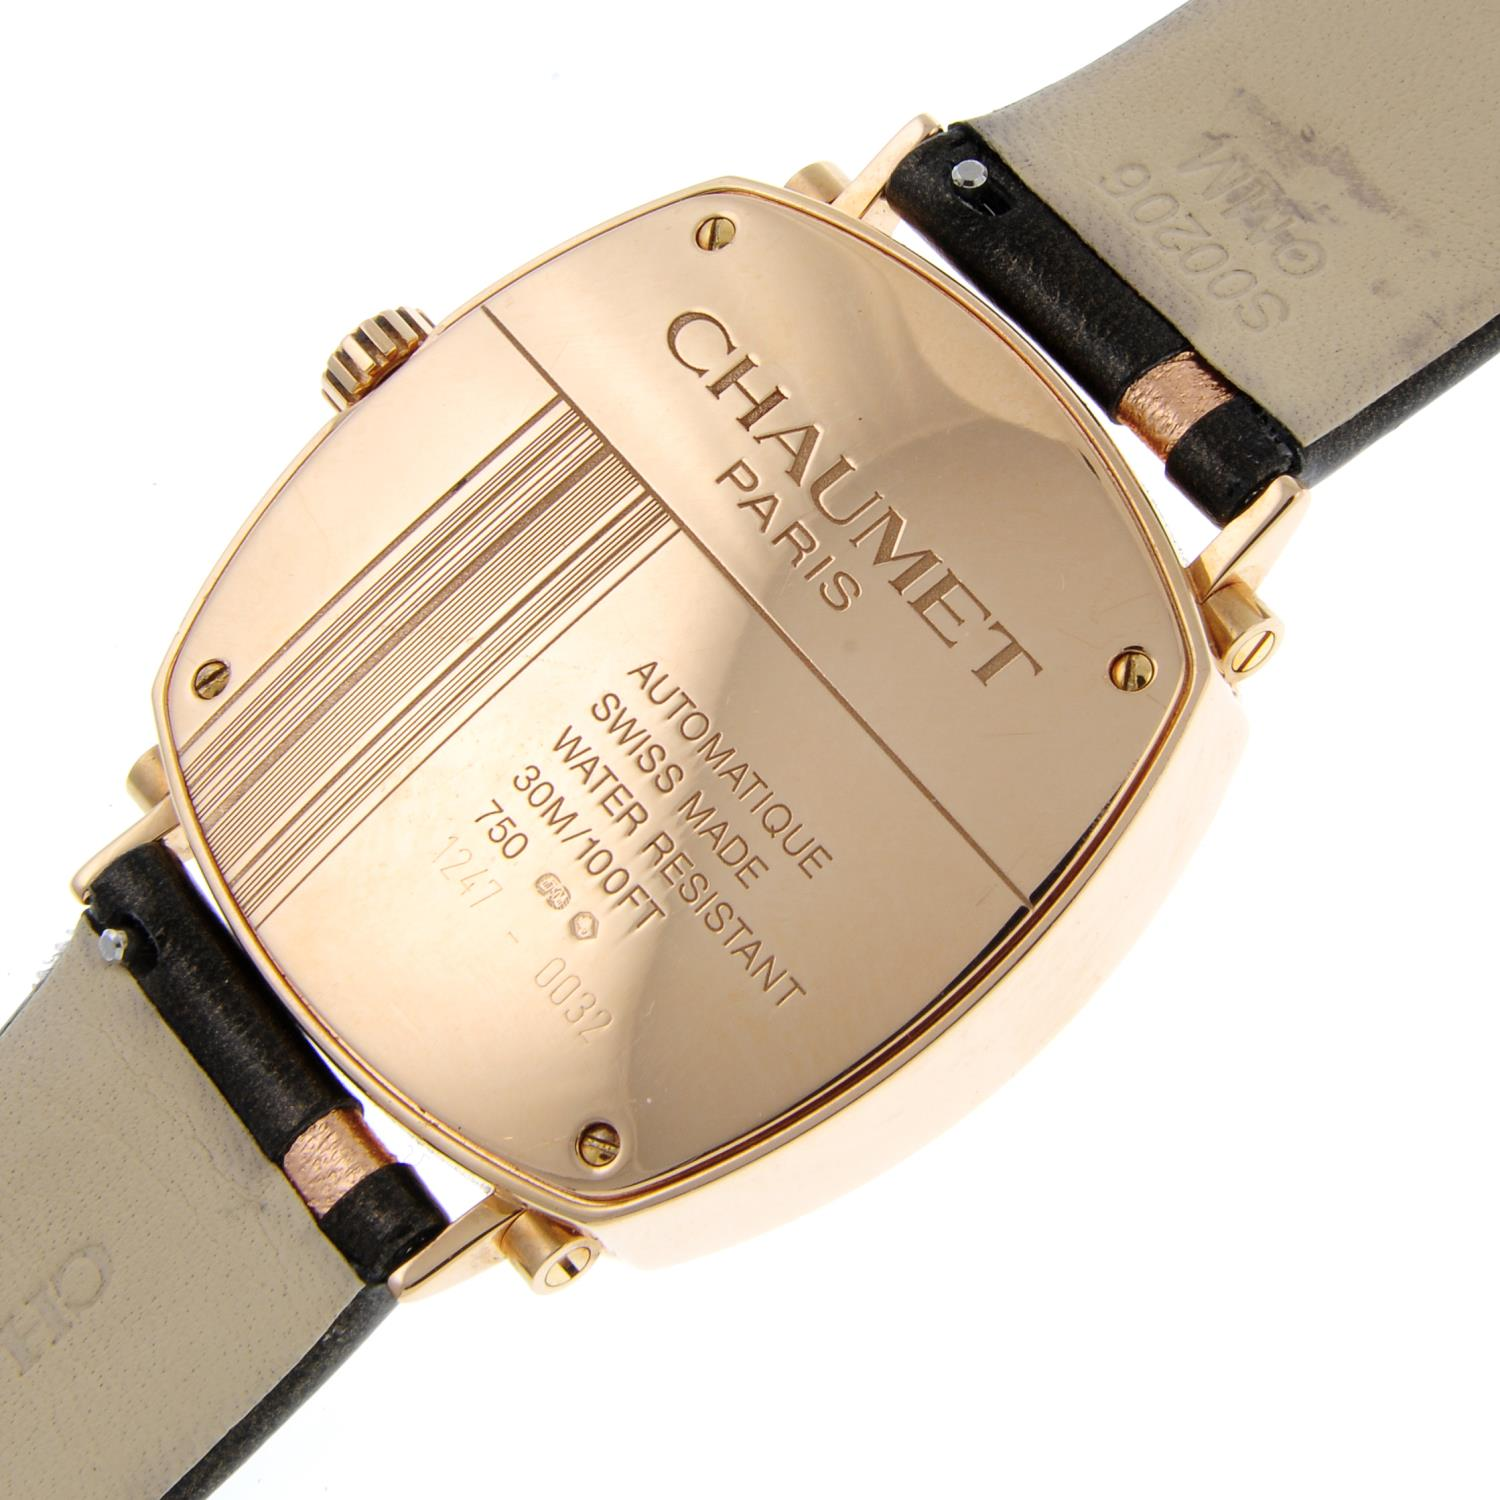 CHAUMET - a Miss Dandy wrist watch. - Image 5 of 5